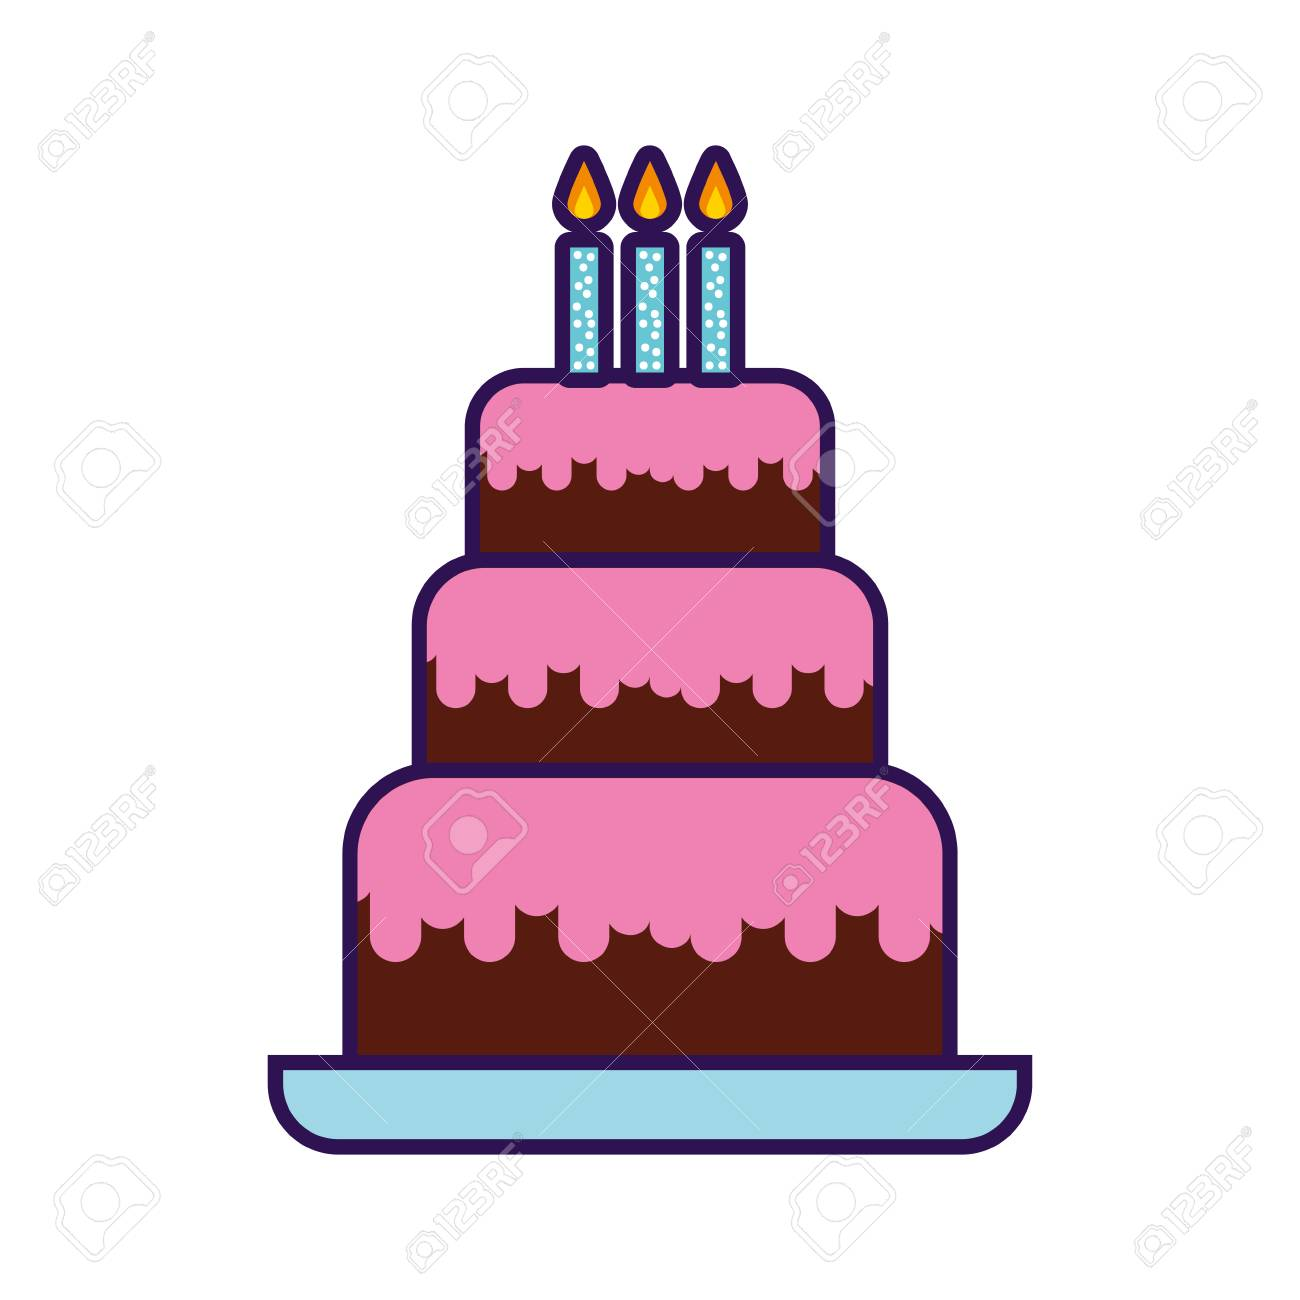 Superb Cute Birthday Cake Cartoon Vector Graphic Design Royalty Free Funny Birthday Cards Online Inifodamsfinfo